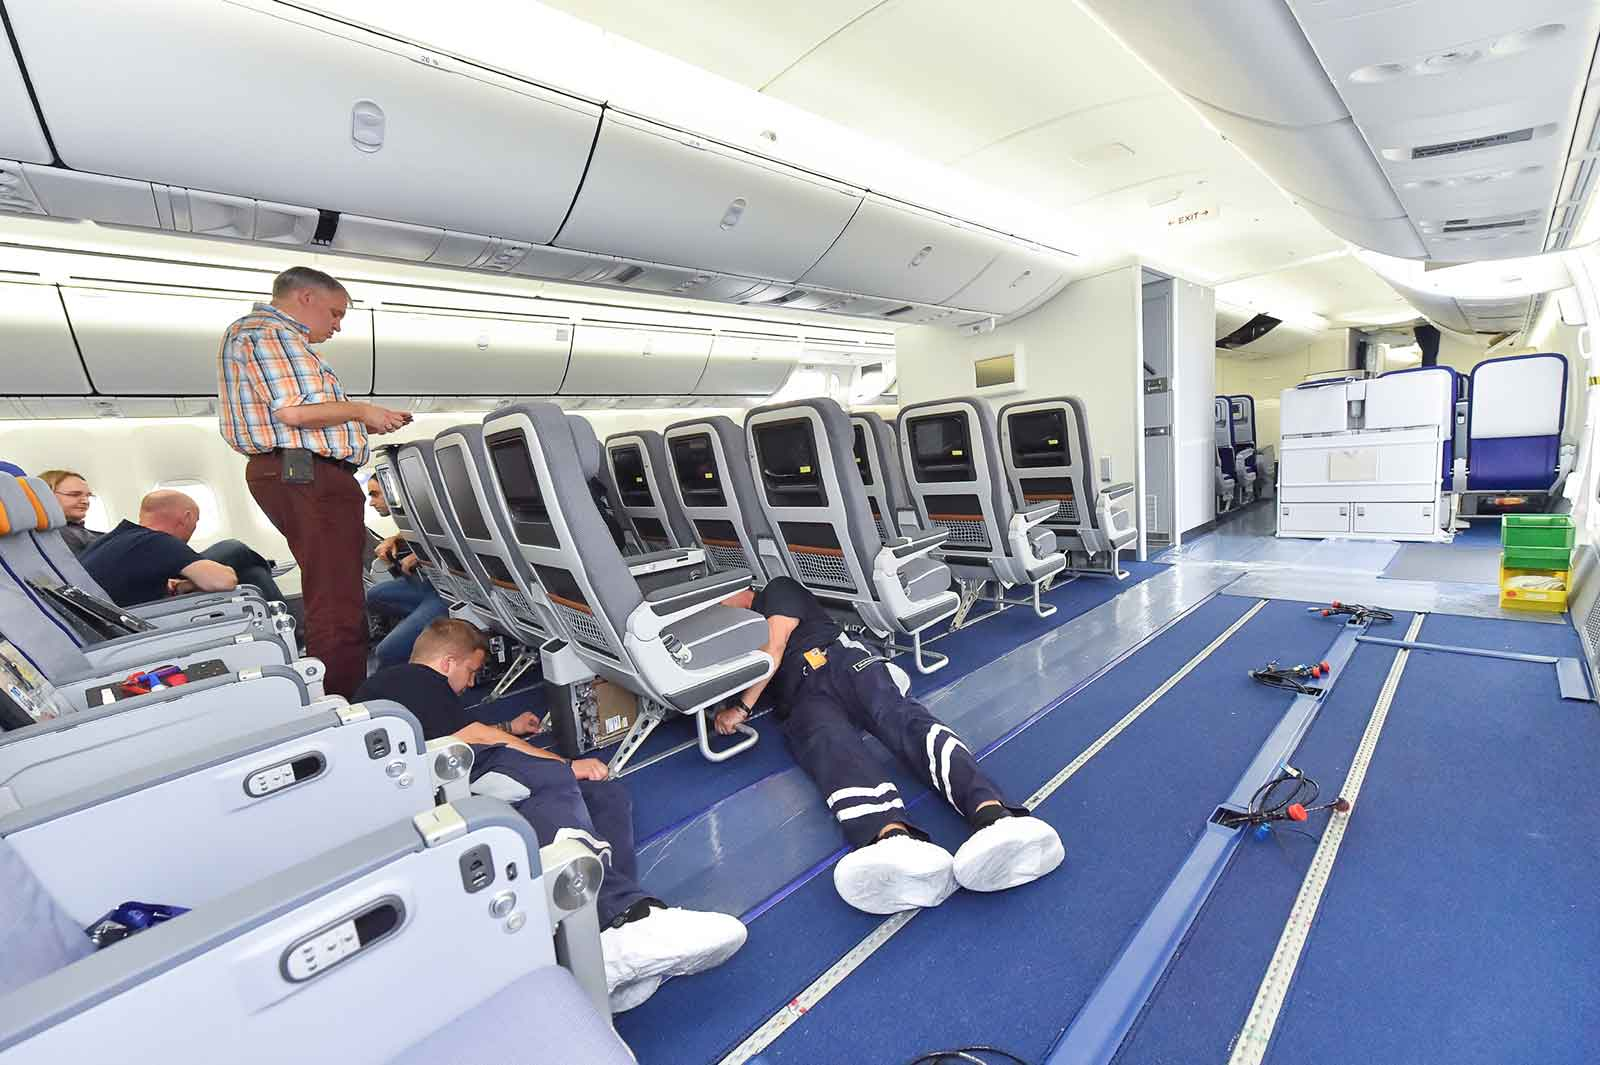 New Lufthansa Premium Economy Class Cabin Seats Being Fitted on a 747